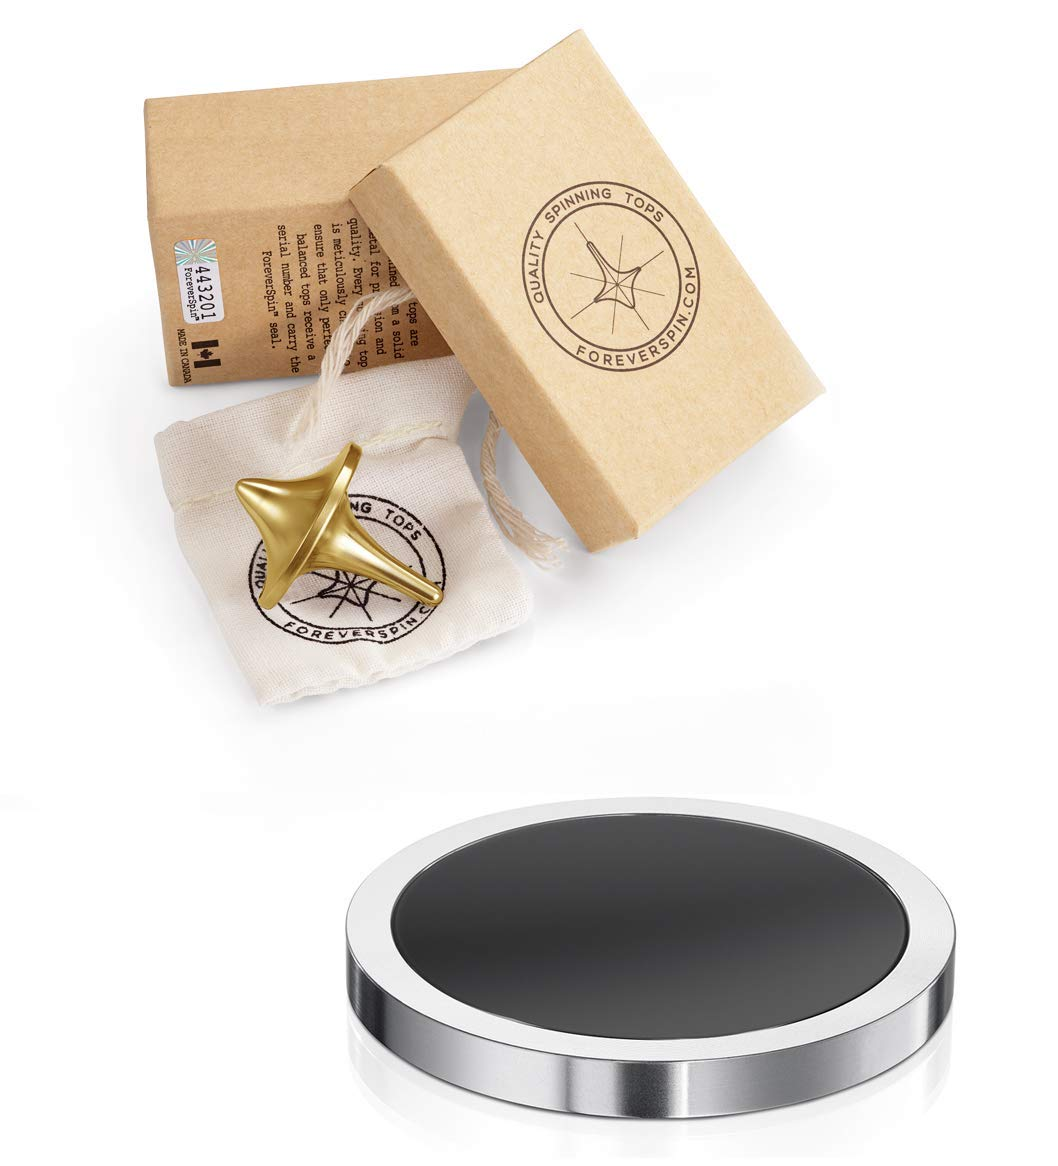 ForeverSpin 24kt Gold Plated(Brush-Finish) Top and Spinning Base Pack - World Famous Spinning Tops by ForeverSpin